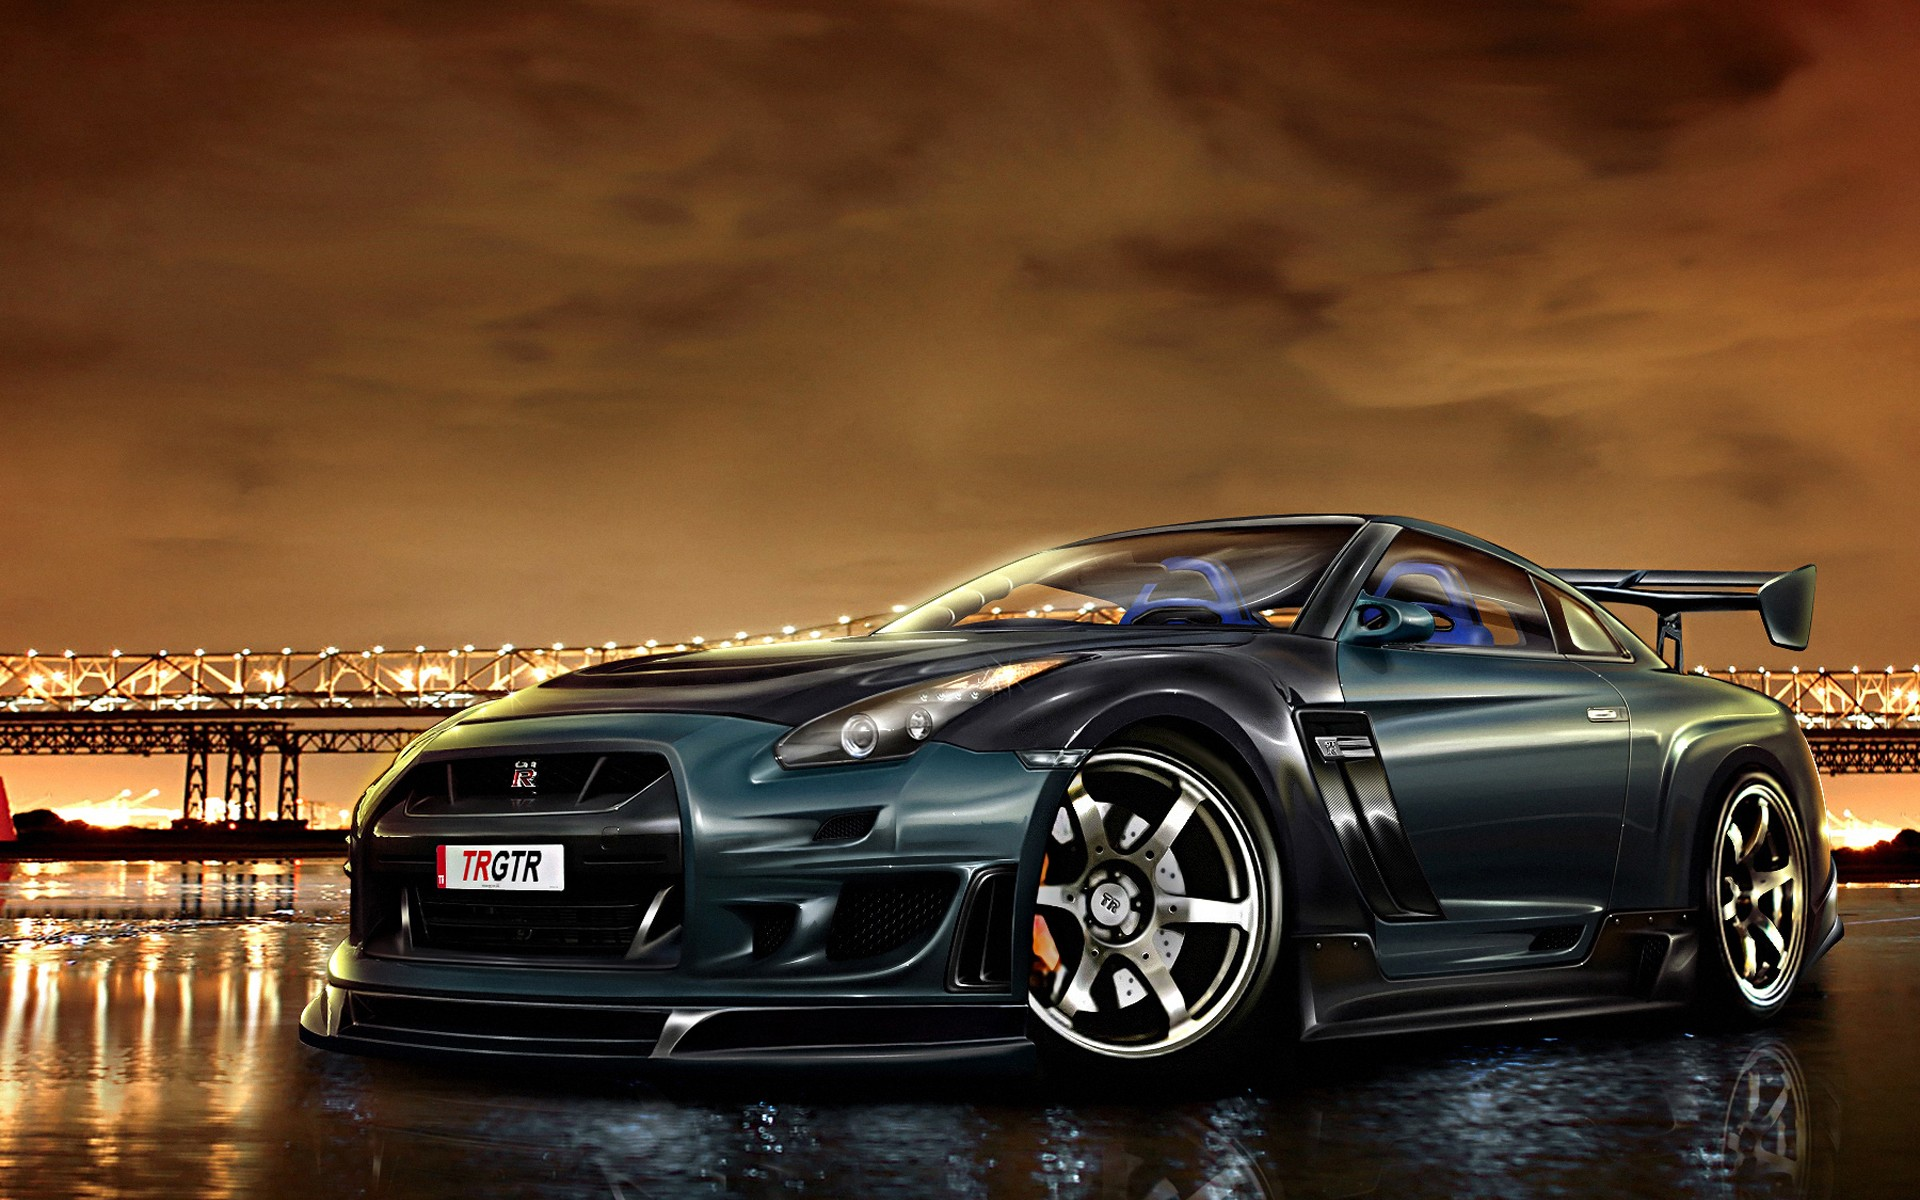 Gtr Backgrounds Free Download